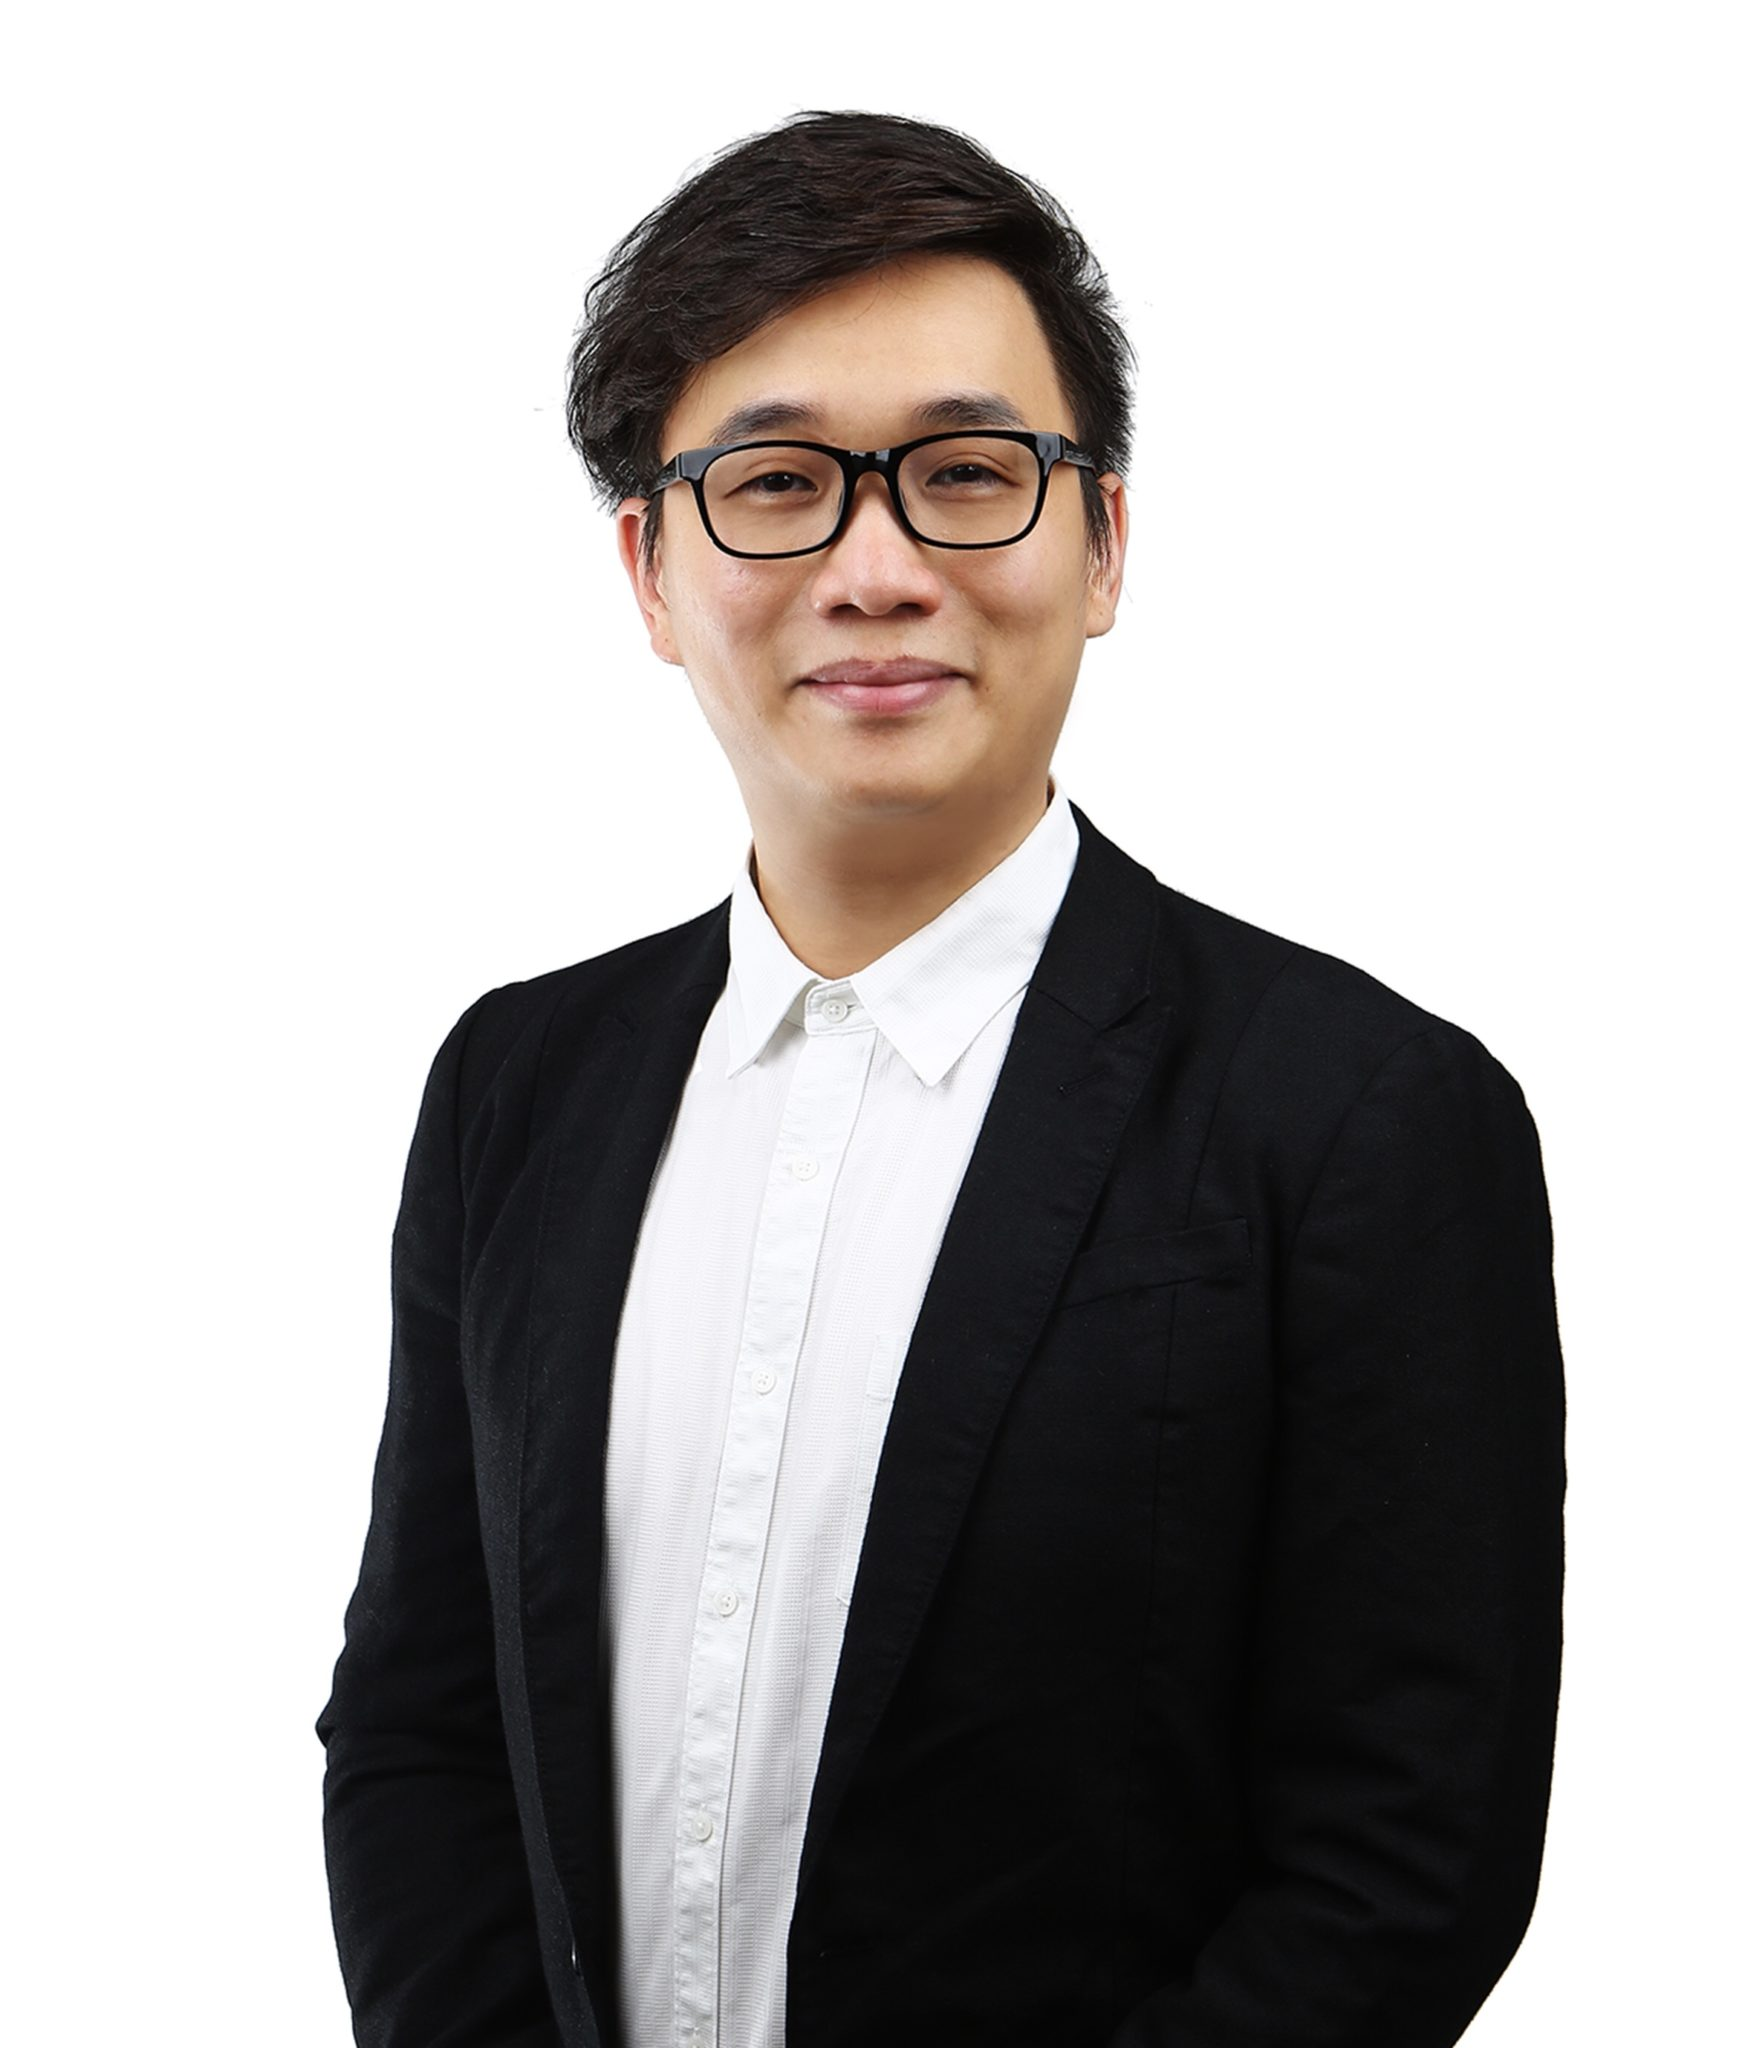 , Linfinity携手香港业界,共同推进区块链商业化进程, Blockchain Adviser for Inter-Governmental Organisation | Book Author | Investor | Board Member